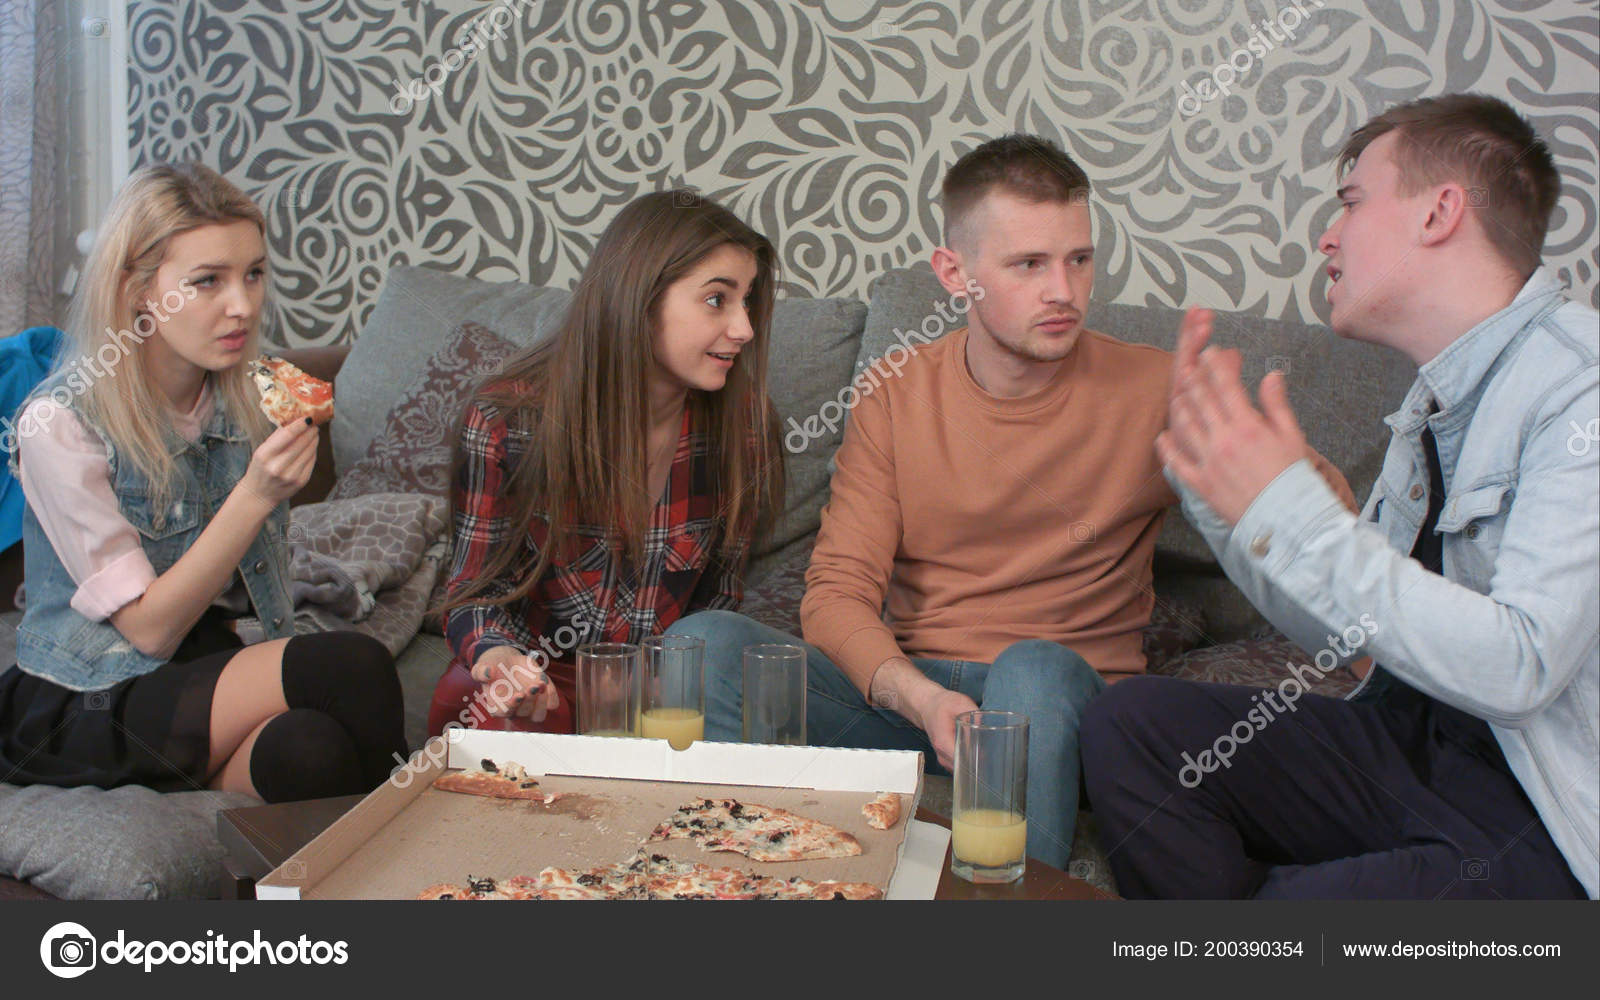 Teen friends having a serious disagreement at home. Professional shot in 4K  resolution. 069. You can use it e.g. in your commercial video, business, ...